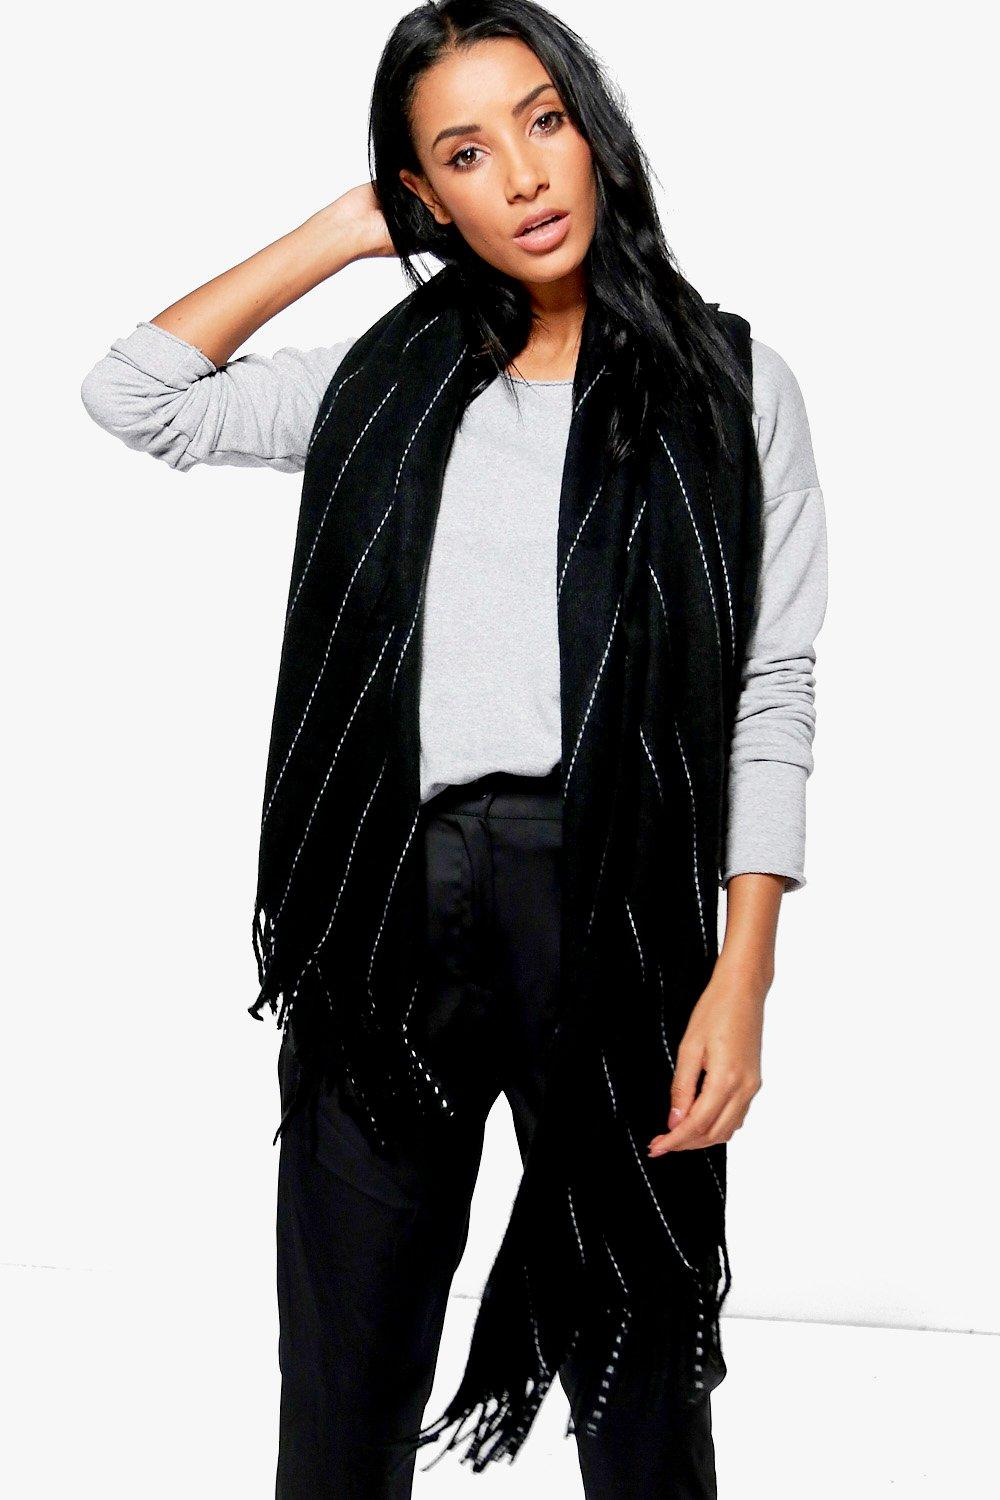 Pinstripe Supersoft Blanket Scarf - black - Diana